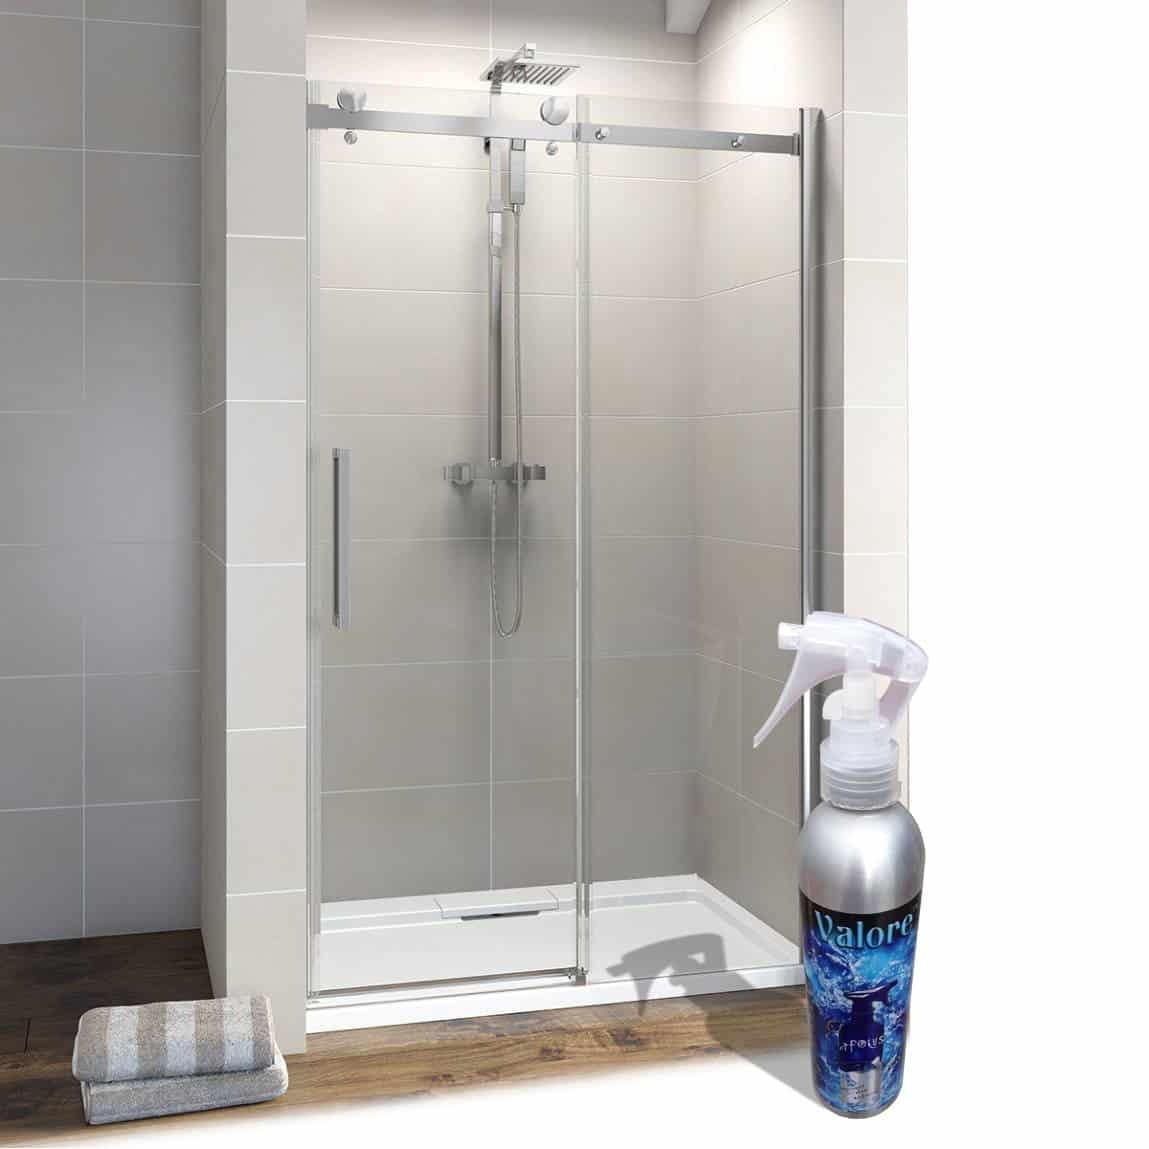 Shower glass protector valore glass sealer pfokus - Shower glass protection ...